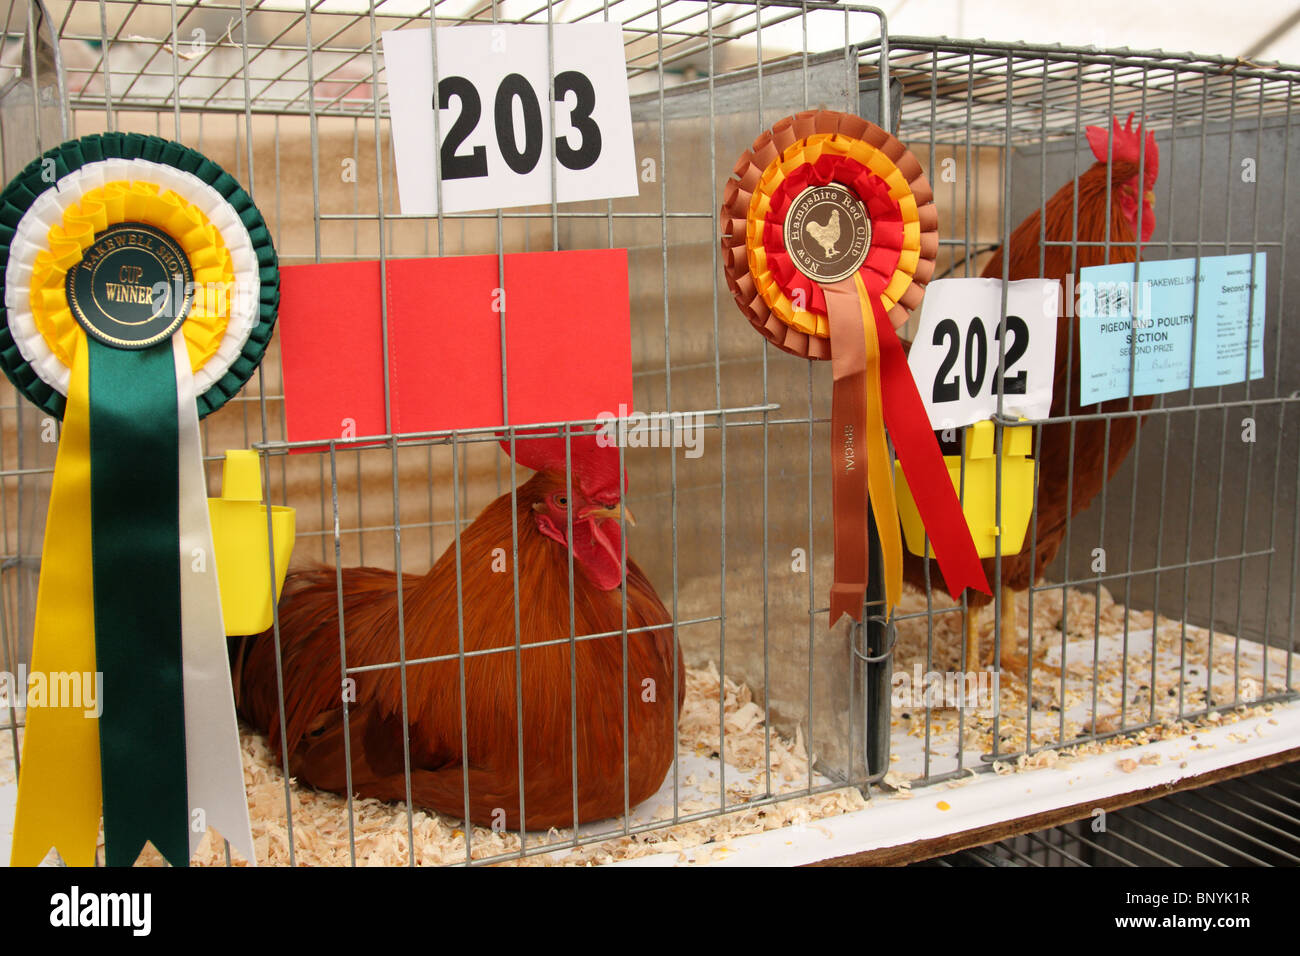 Poultry at the Bakewell Show, Bakewell, Derbyshire, England, U.K. - Stock Image